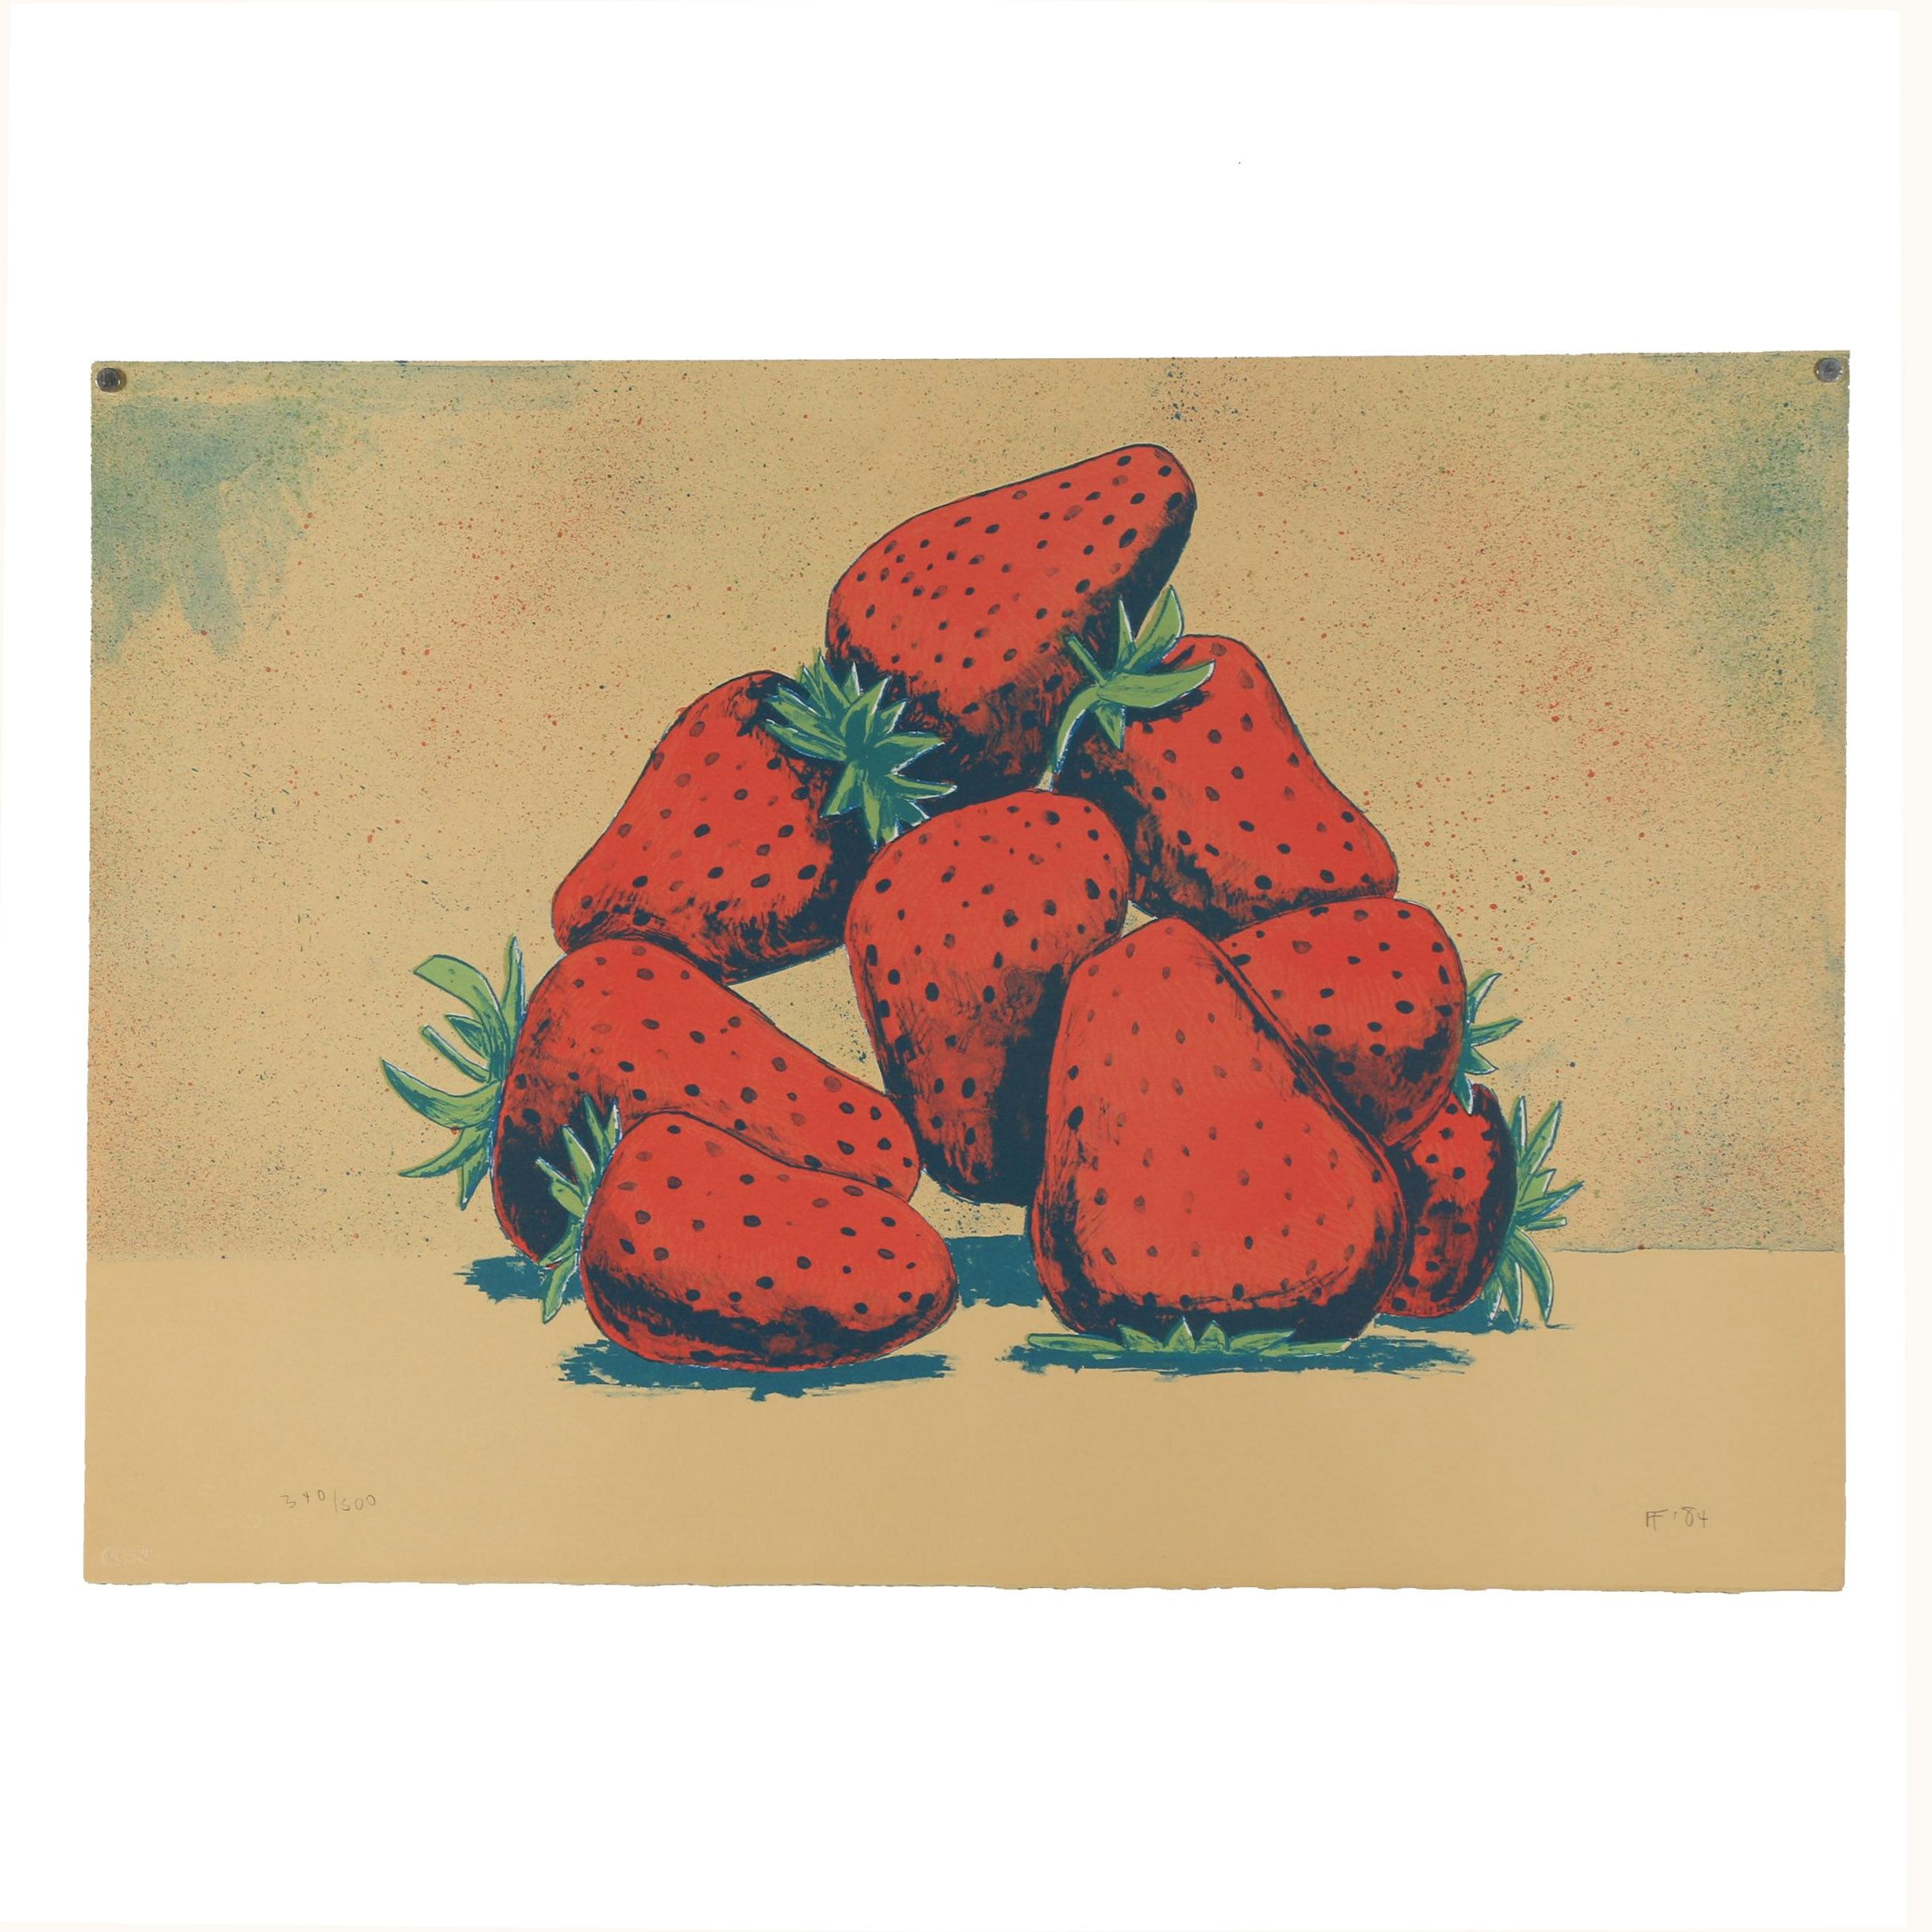 Aaron Fink 1984 Color Lithograph Depicting Strawberries